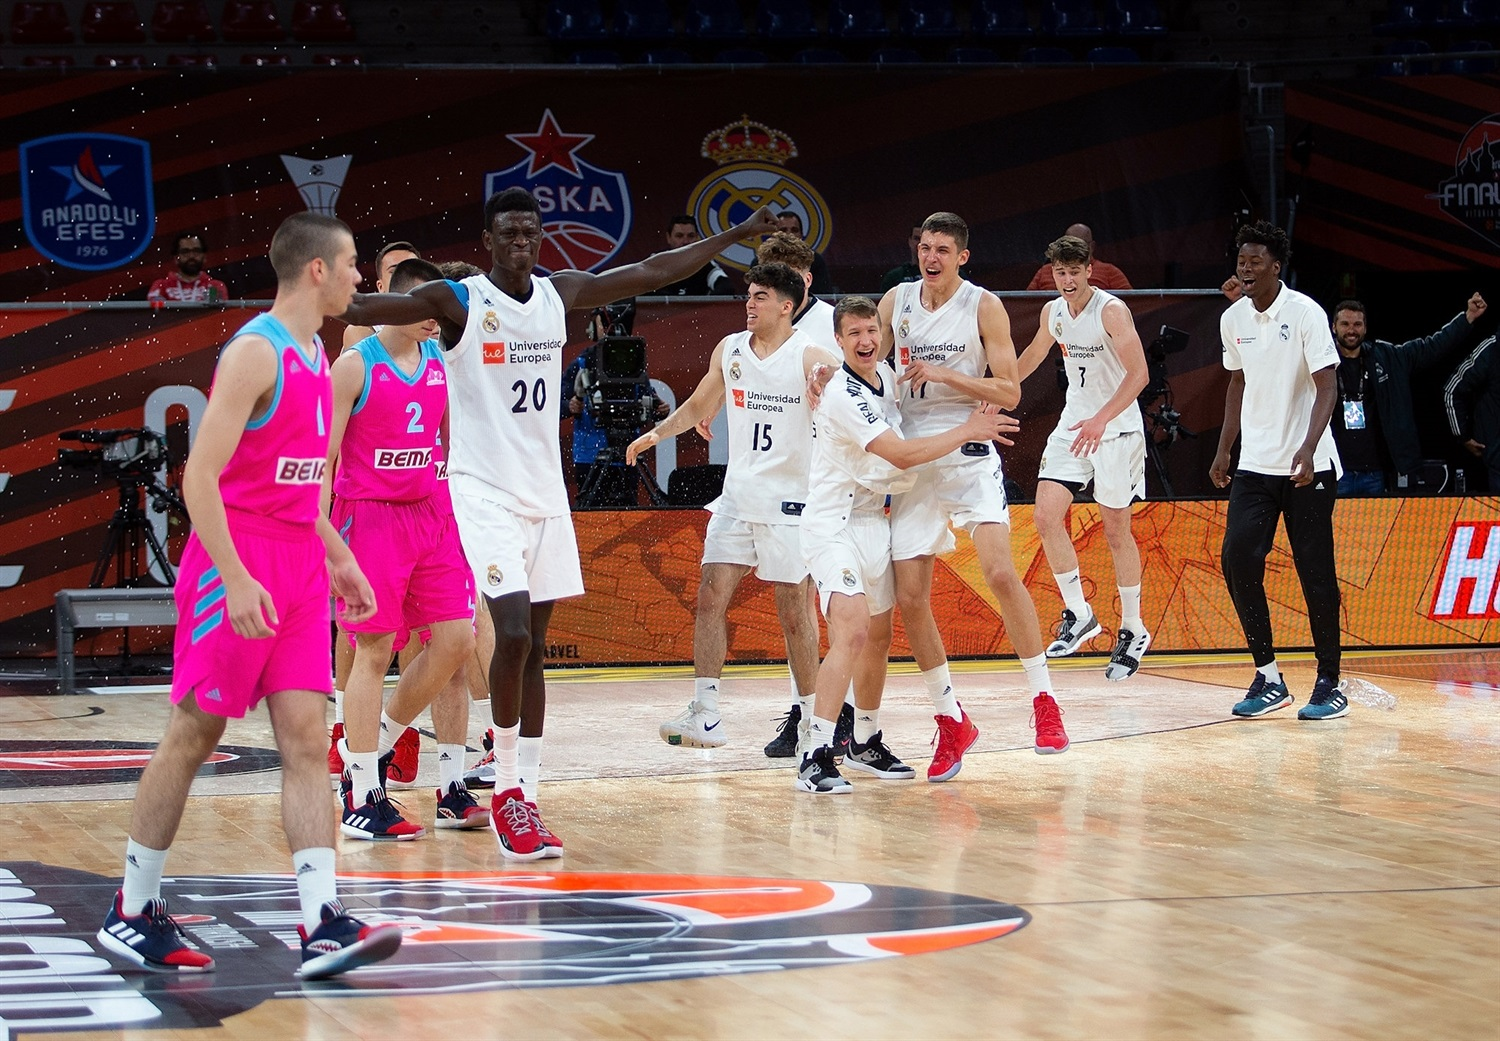 U18 Real Madrid Champ ANGT 2019 - ANGT Final Four Vitoria-Gasteiz 2019 - JT18